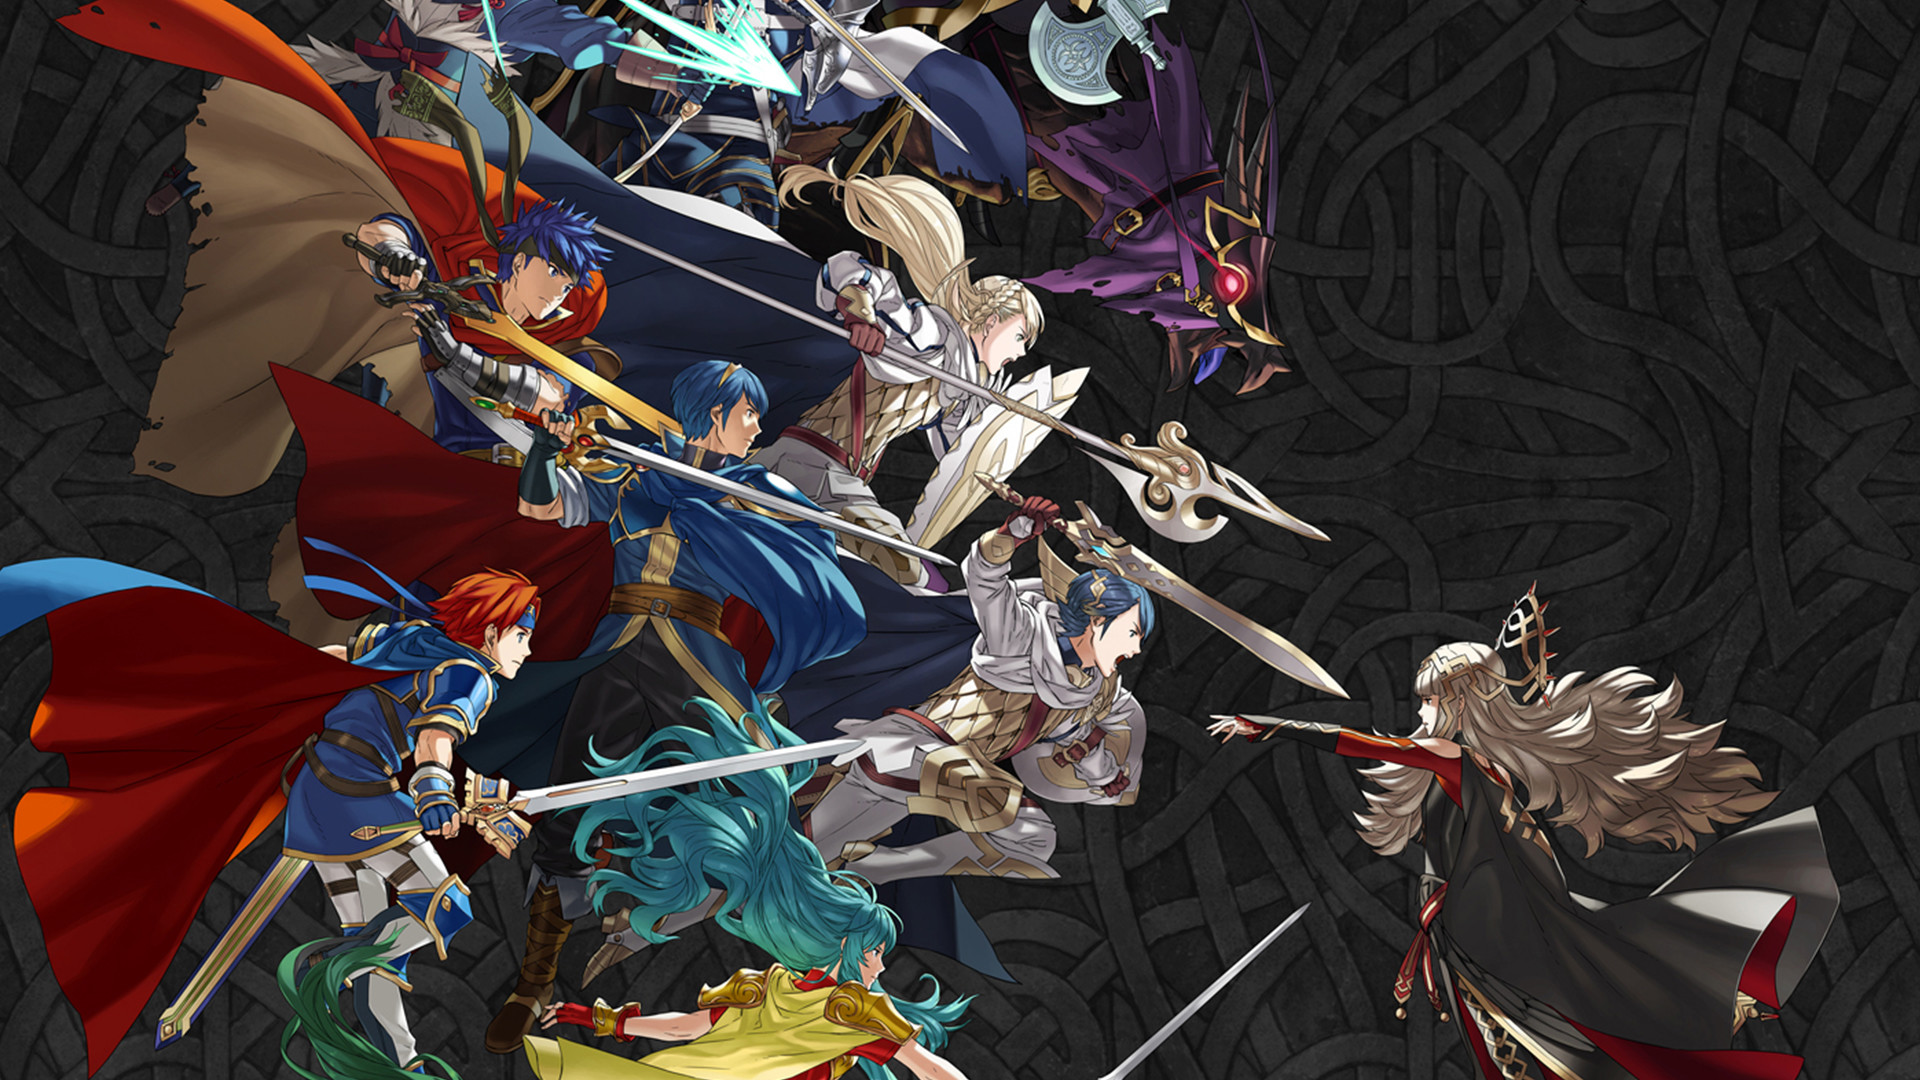 1920x1080 First Fire Emblem Heroes mobile calendars now revealed, feature Ike and Lyn  | Nintendo Wire